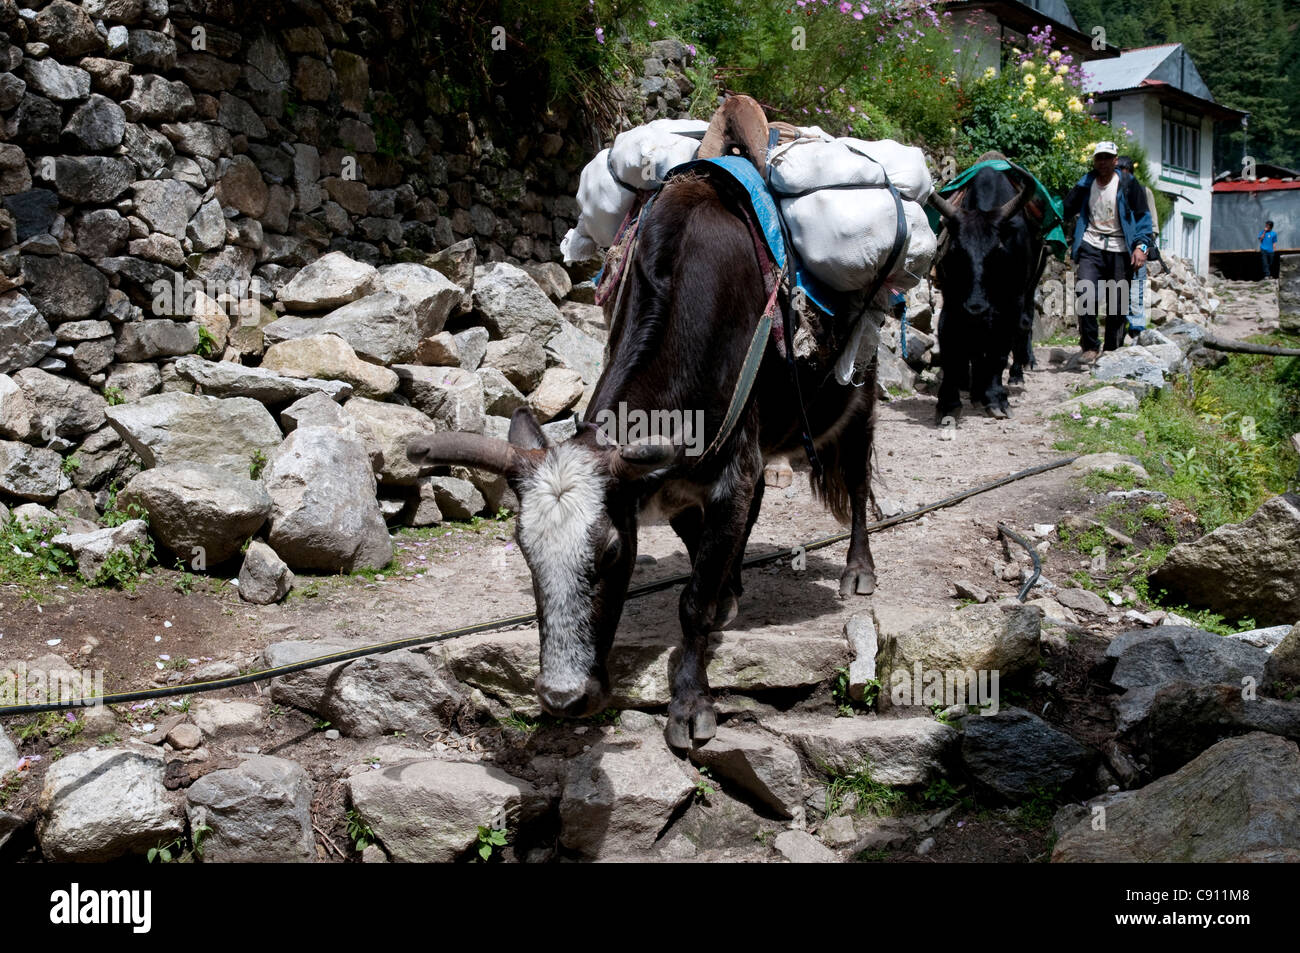 Yaks carry much of the loads on treks and expeditions in the mountains and are surefooted on the rocky paths. - Stock Image